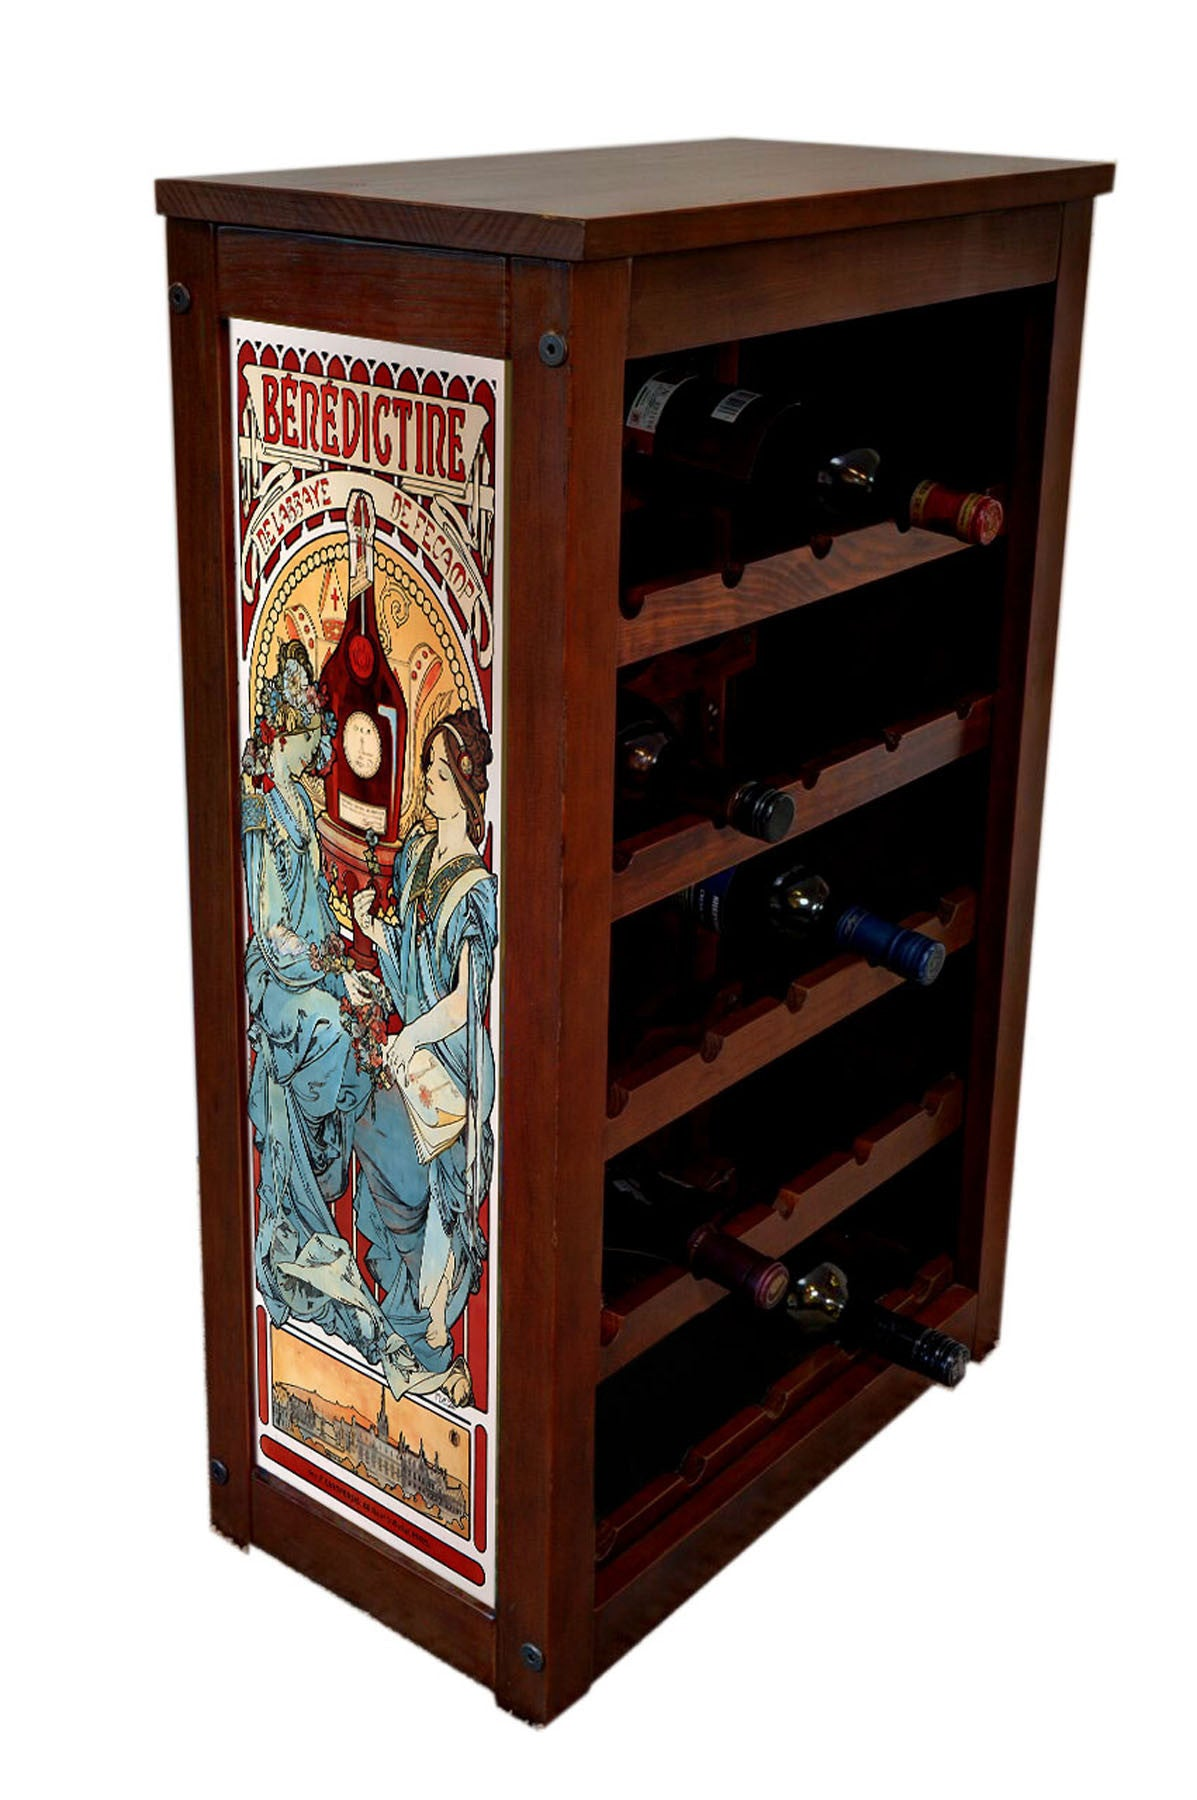 Benedictine liquor Cabinet-25 Bottle by Alphonse Mucha